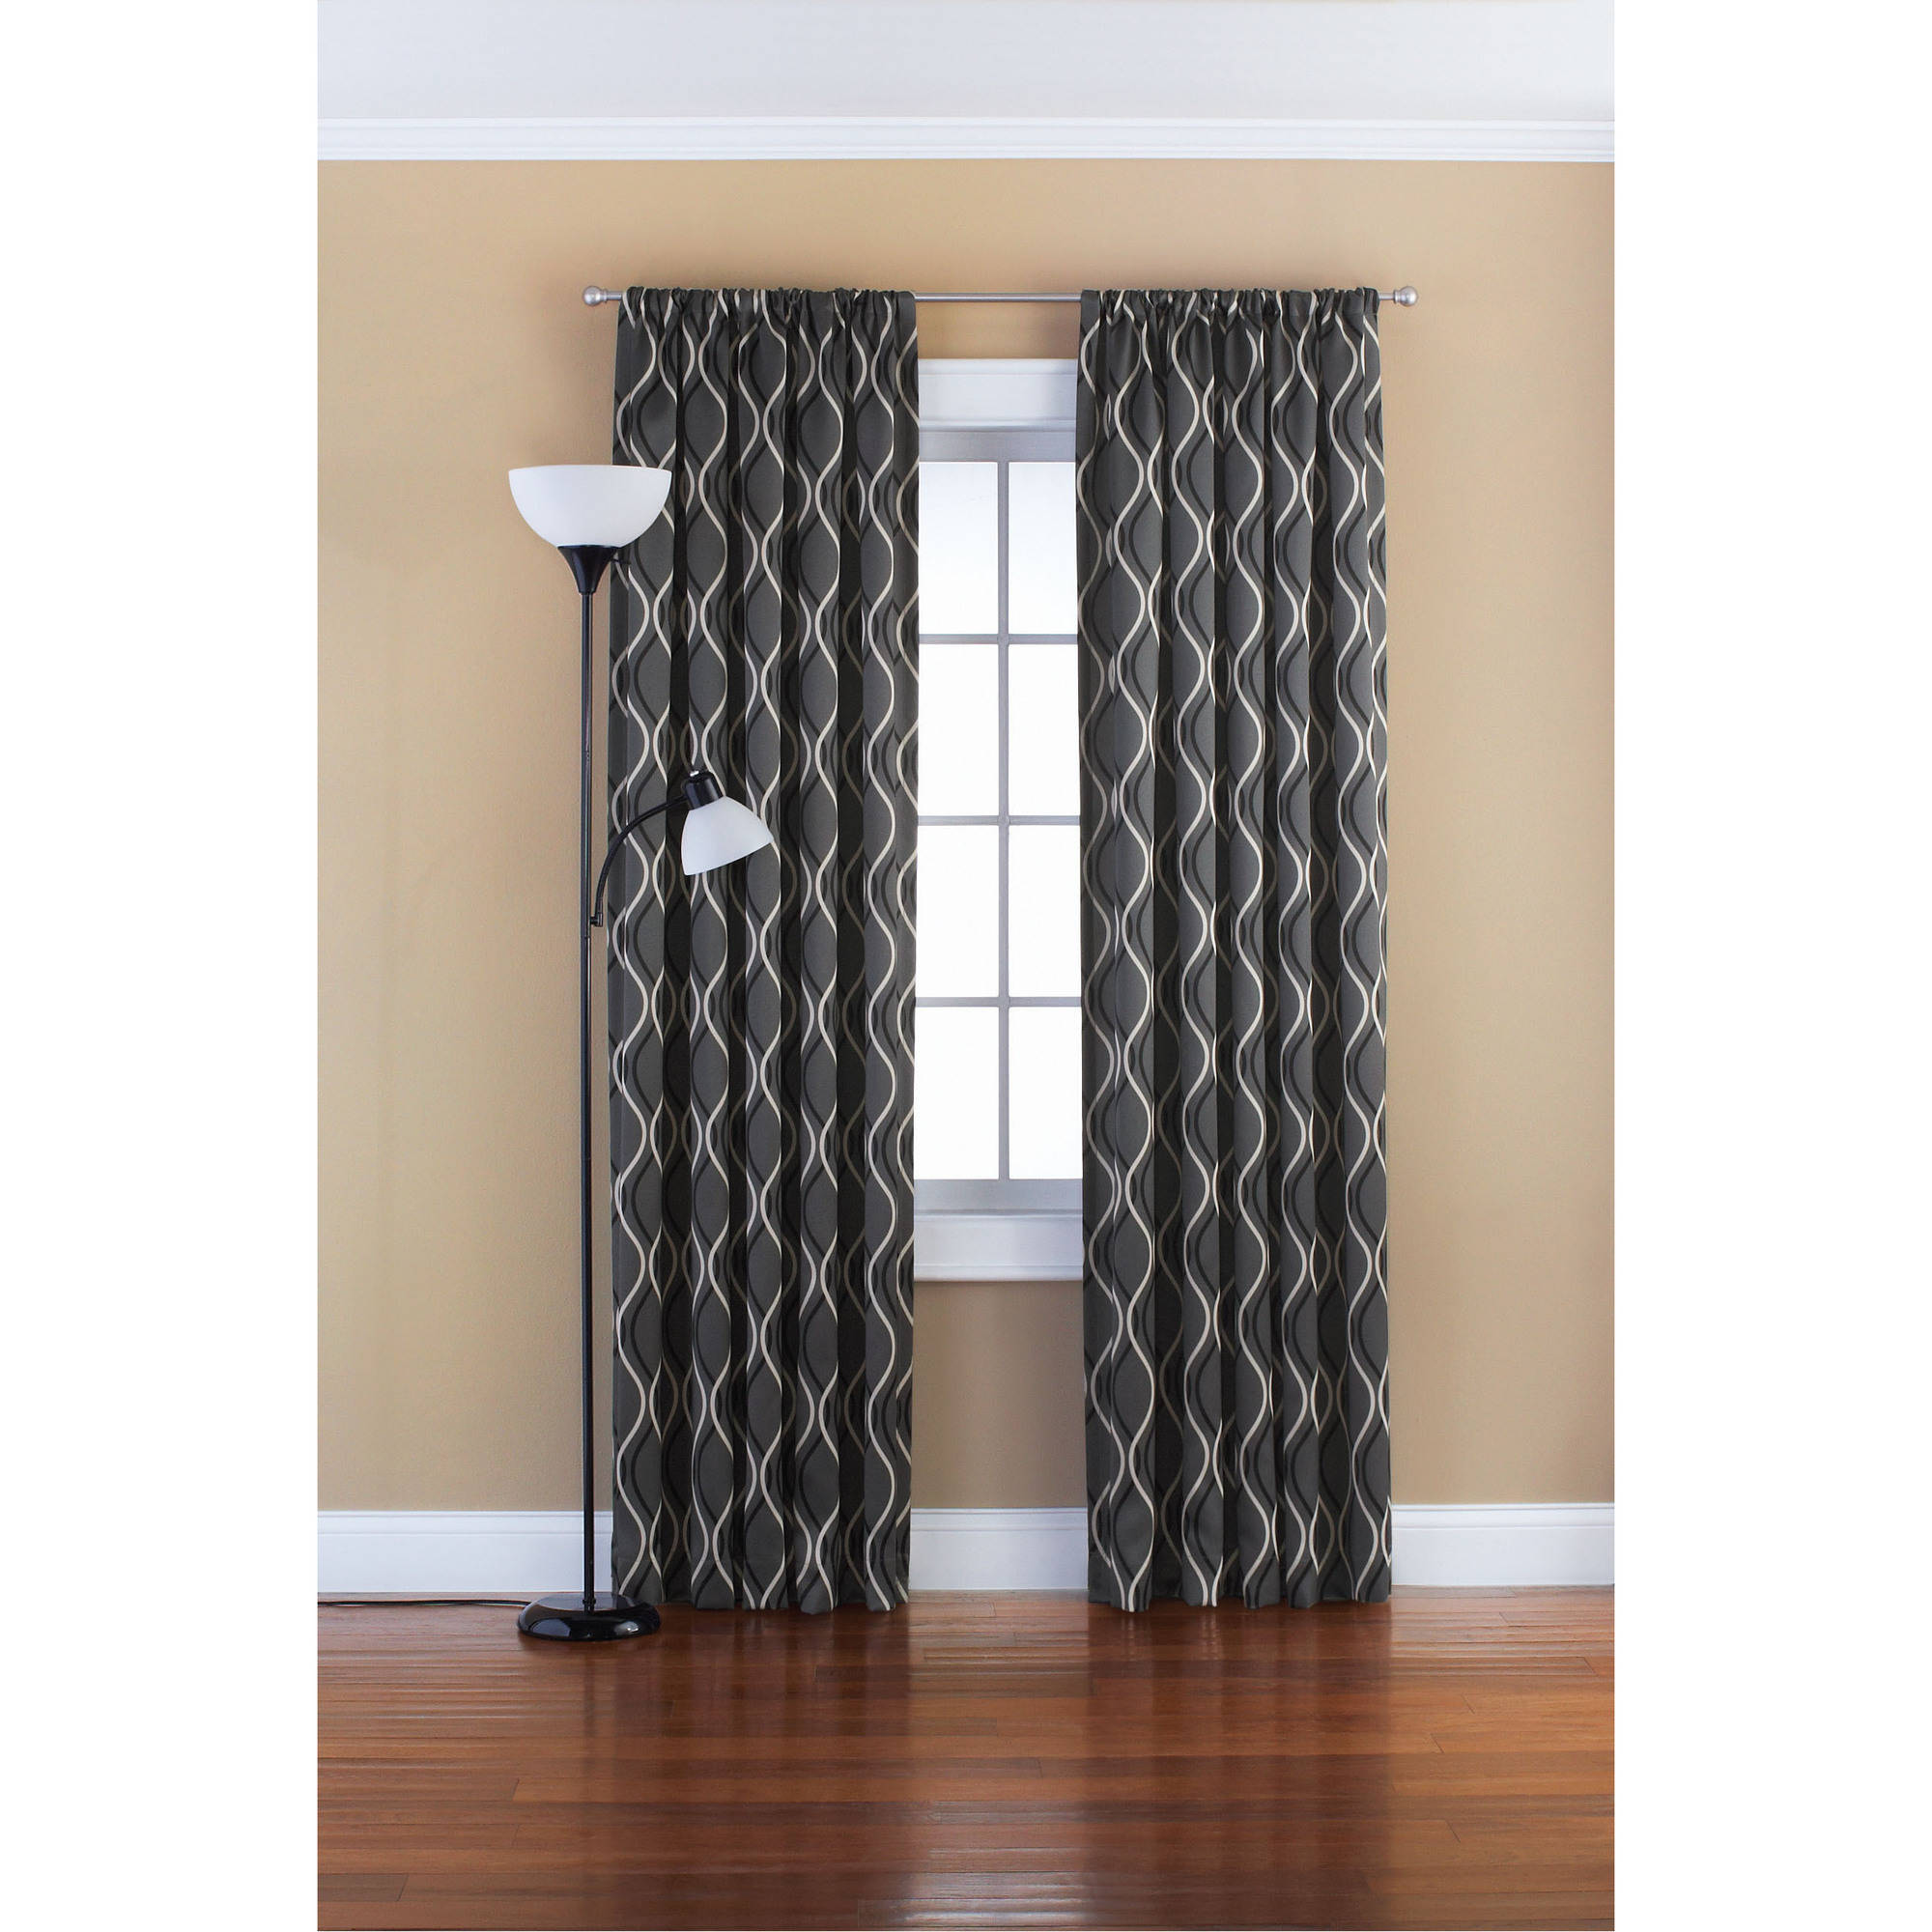 Grey Thermal Curtains Eclipse Samara Room Darkening Energy Efficient Thermal Curtain Panel